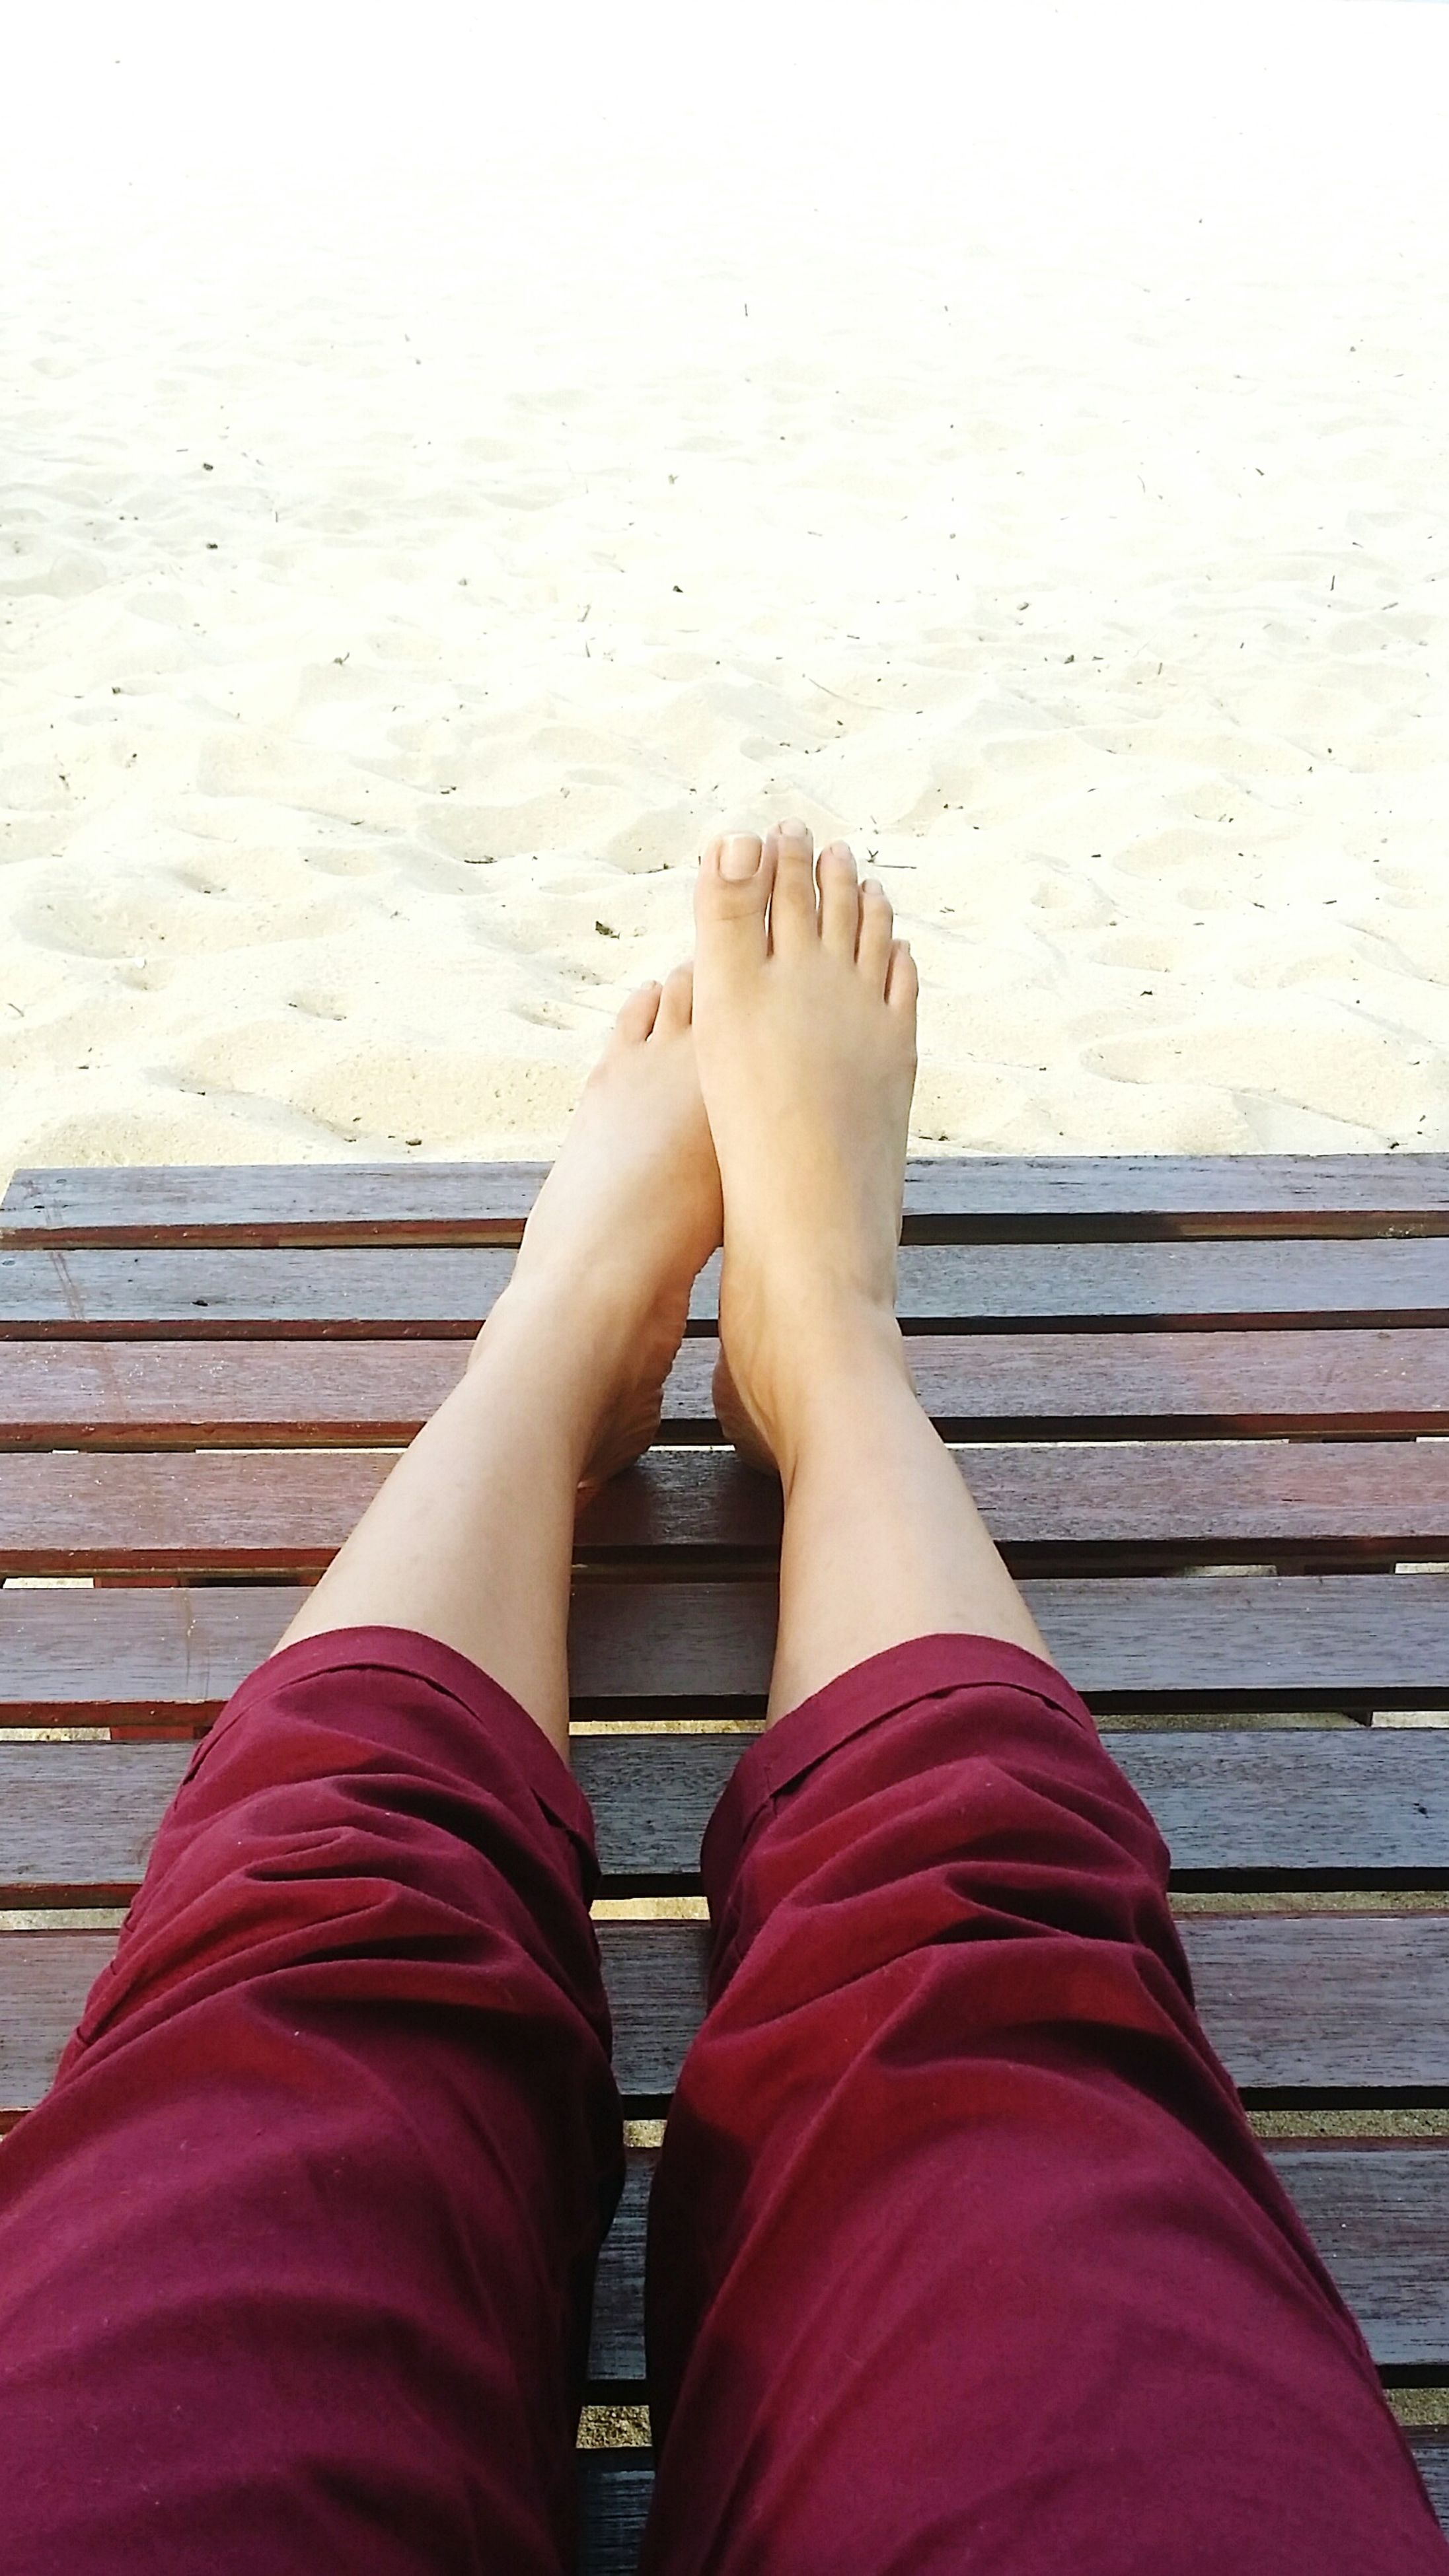 low section, person, relaxation, personal perspective, vacations, beach, day, outdoors, water, tourism, resting, sea